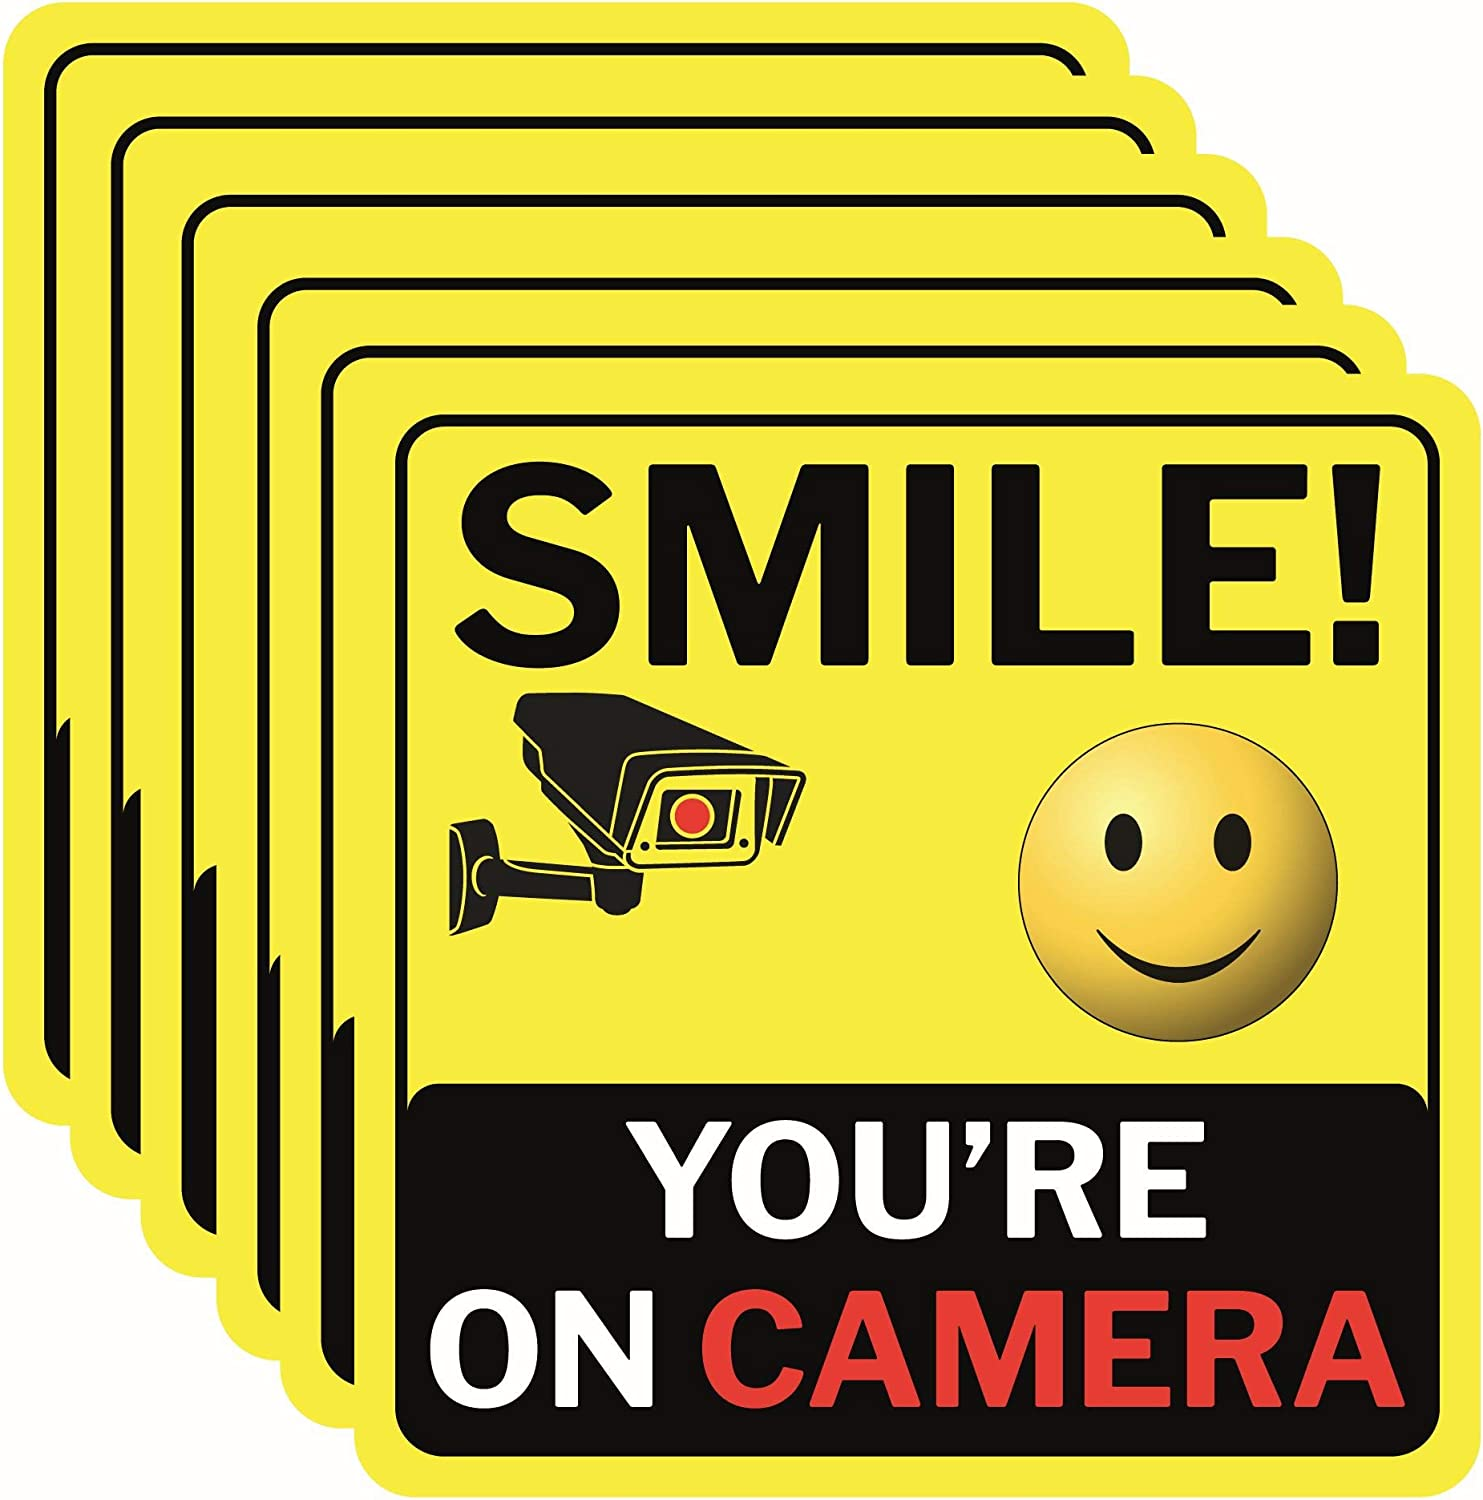 SMILE YOU/'RE ON CAMERA Advertising Vinyl Banner Flag Sign Many Sizes SECURITY